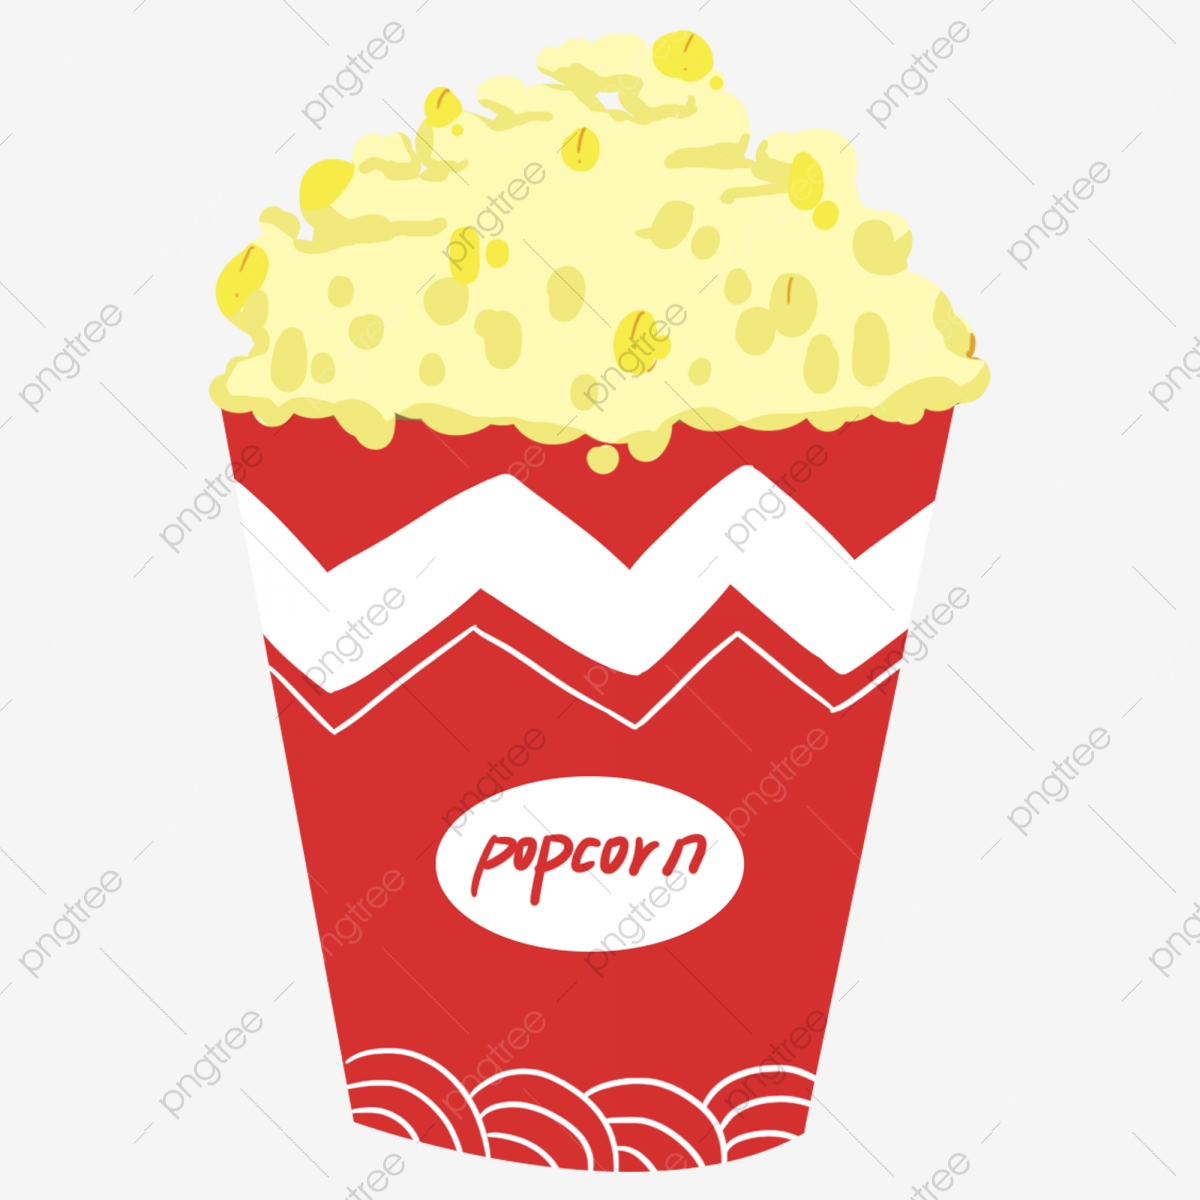 Snacks Popcorn Food Snack Food A Bucket Of Popcorn Illustration Red Packaging Popcorn Imagem Png E Psd Para Download Gratuito